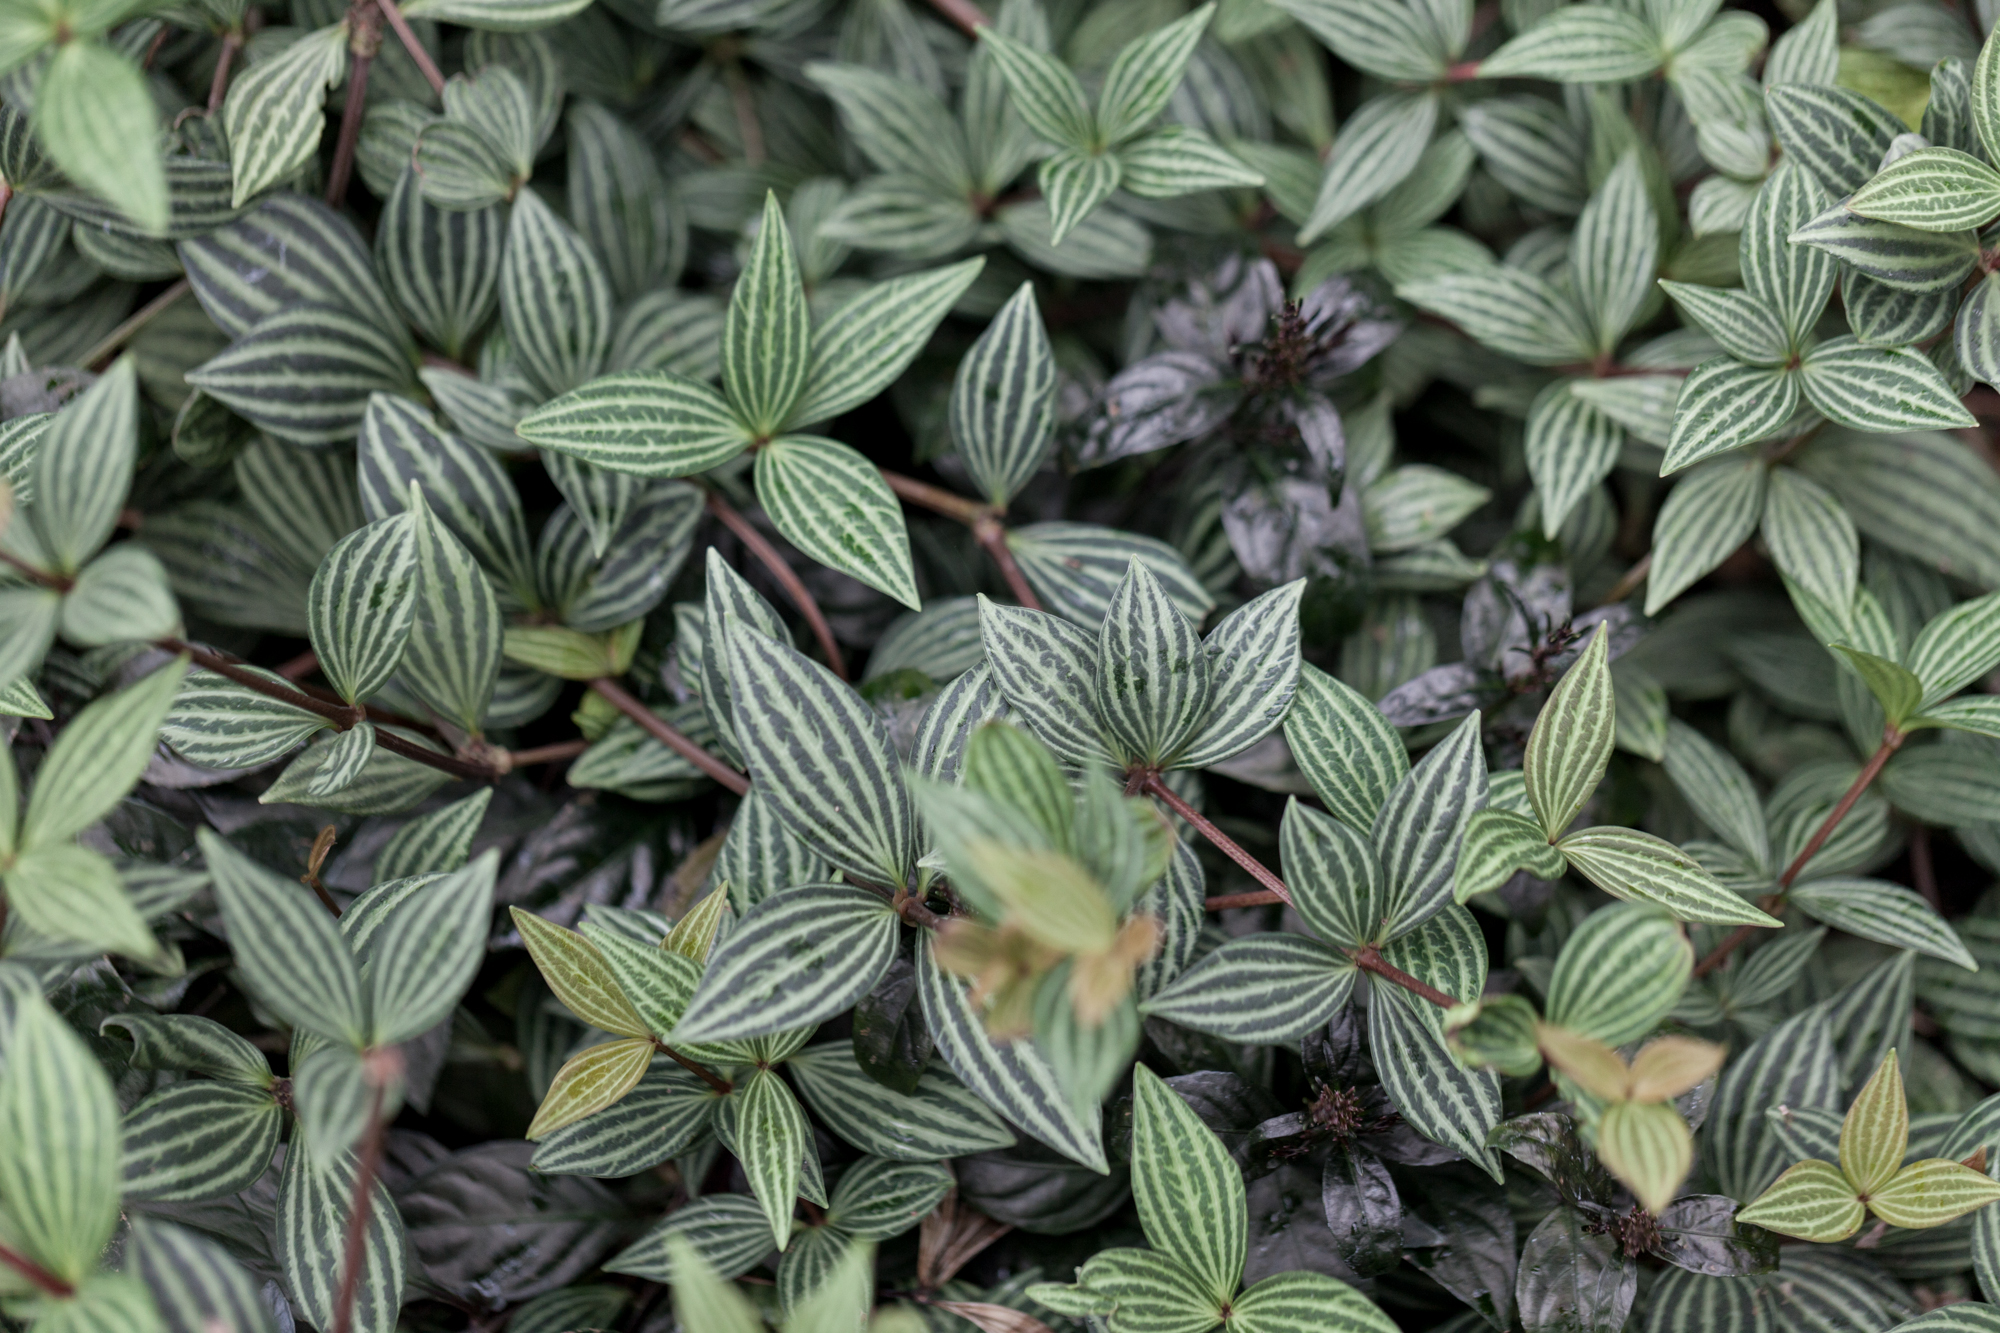 Peperomia  and other popular houseplant species manage well under a balanced fertilizer.